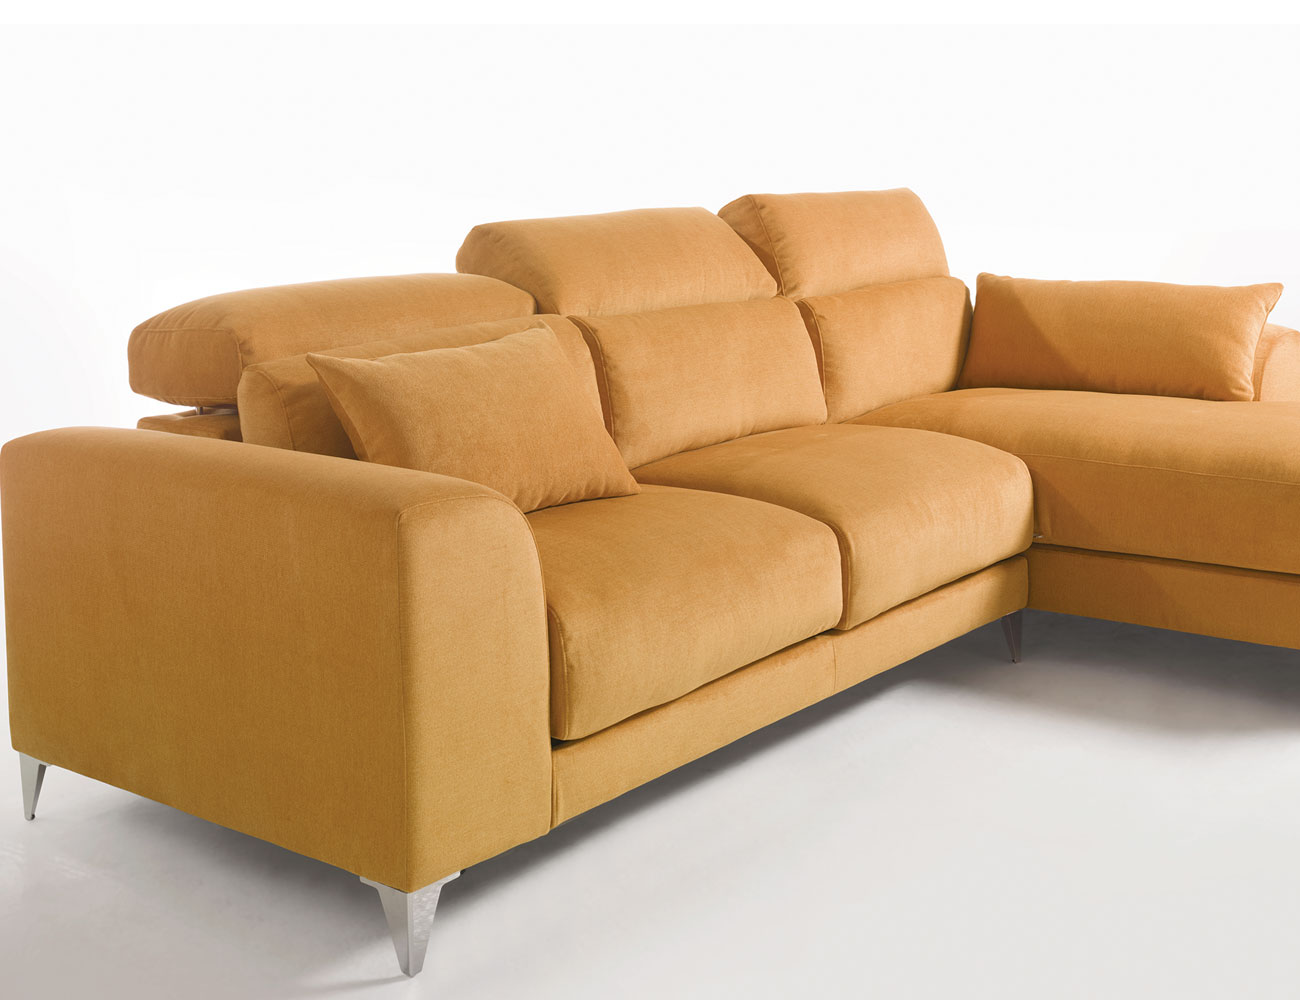 Sofa chaiselongue gran lujo decorativo patas altas amarillo 222